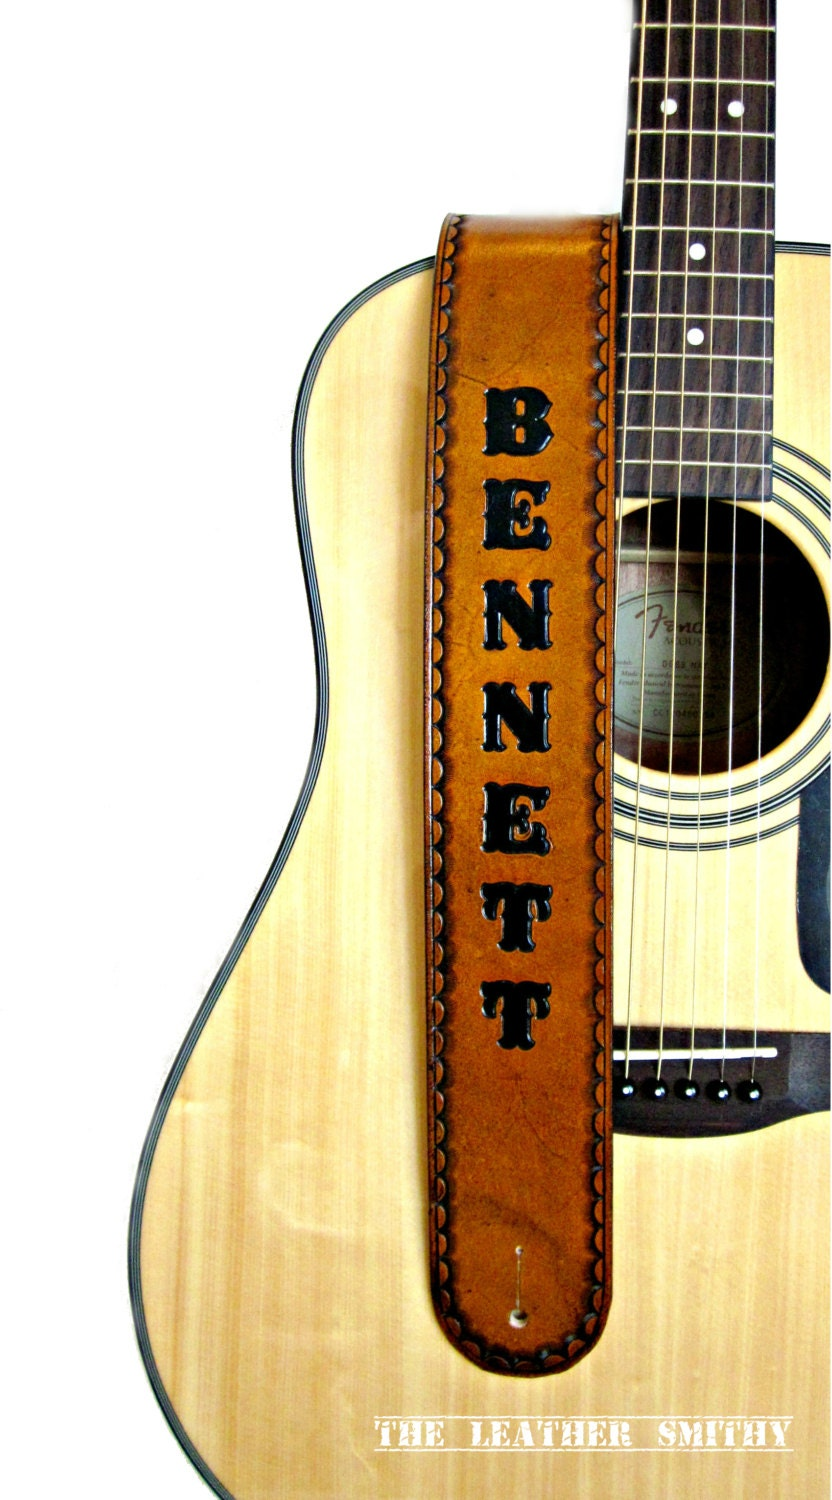 Personalized Adjustable Handmade Tan Leather Guitar Strap